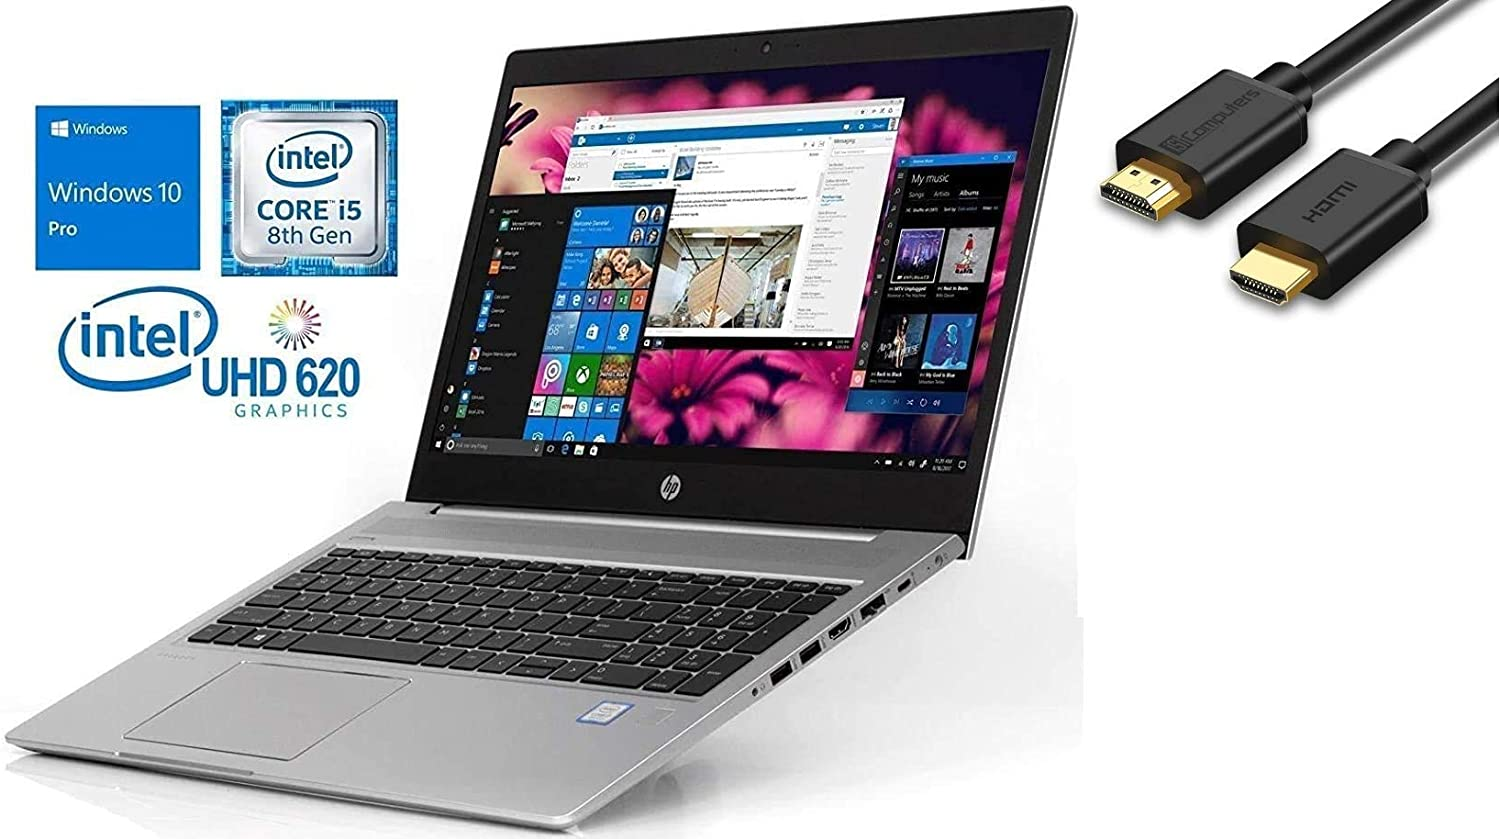 "2019 HP Probook 450 G6 15.6"" HD Business Laptop (Intel Quad-Core i5-8265U, 8GB DDR4 RAM, 256GB PCIe NVMe M.2 SSD, UHD 620) USB Type-C, RJ45, HDMI, Windows 10 Pro+ IST HDMI Cable"